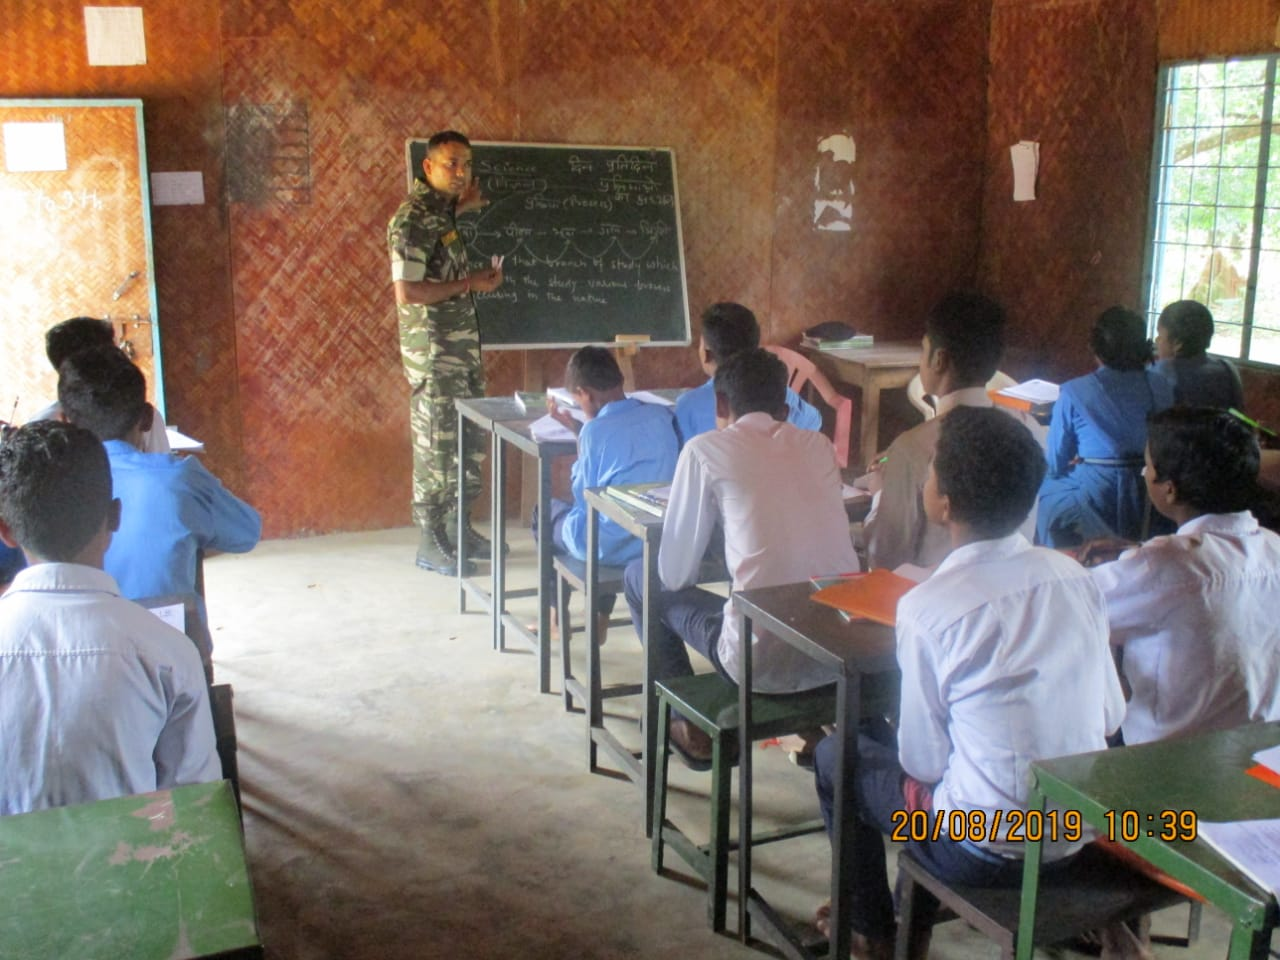 CRPF personnel are conducting classes for students at a school in Koleng (Photo/ANI)